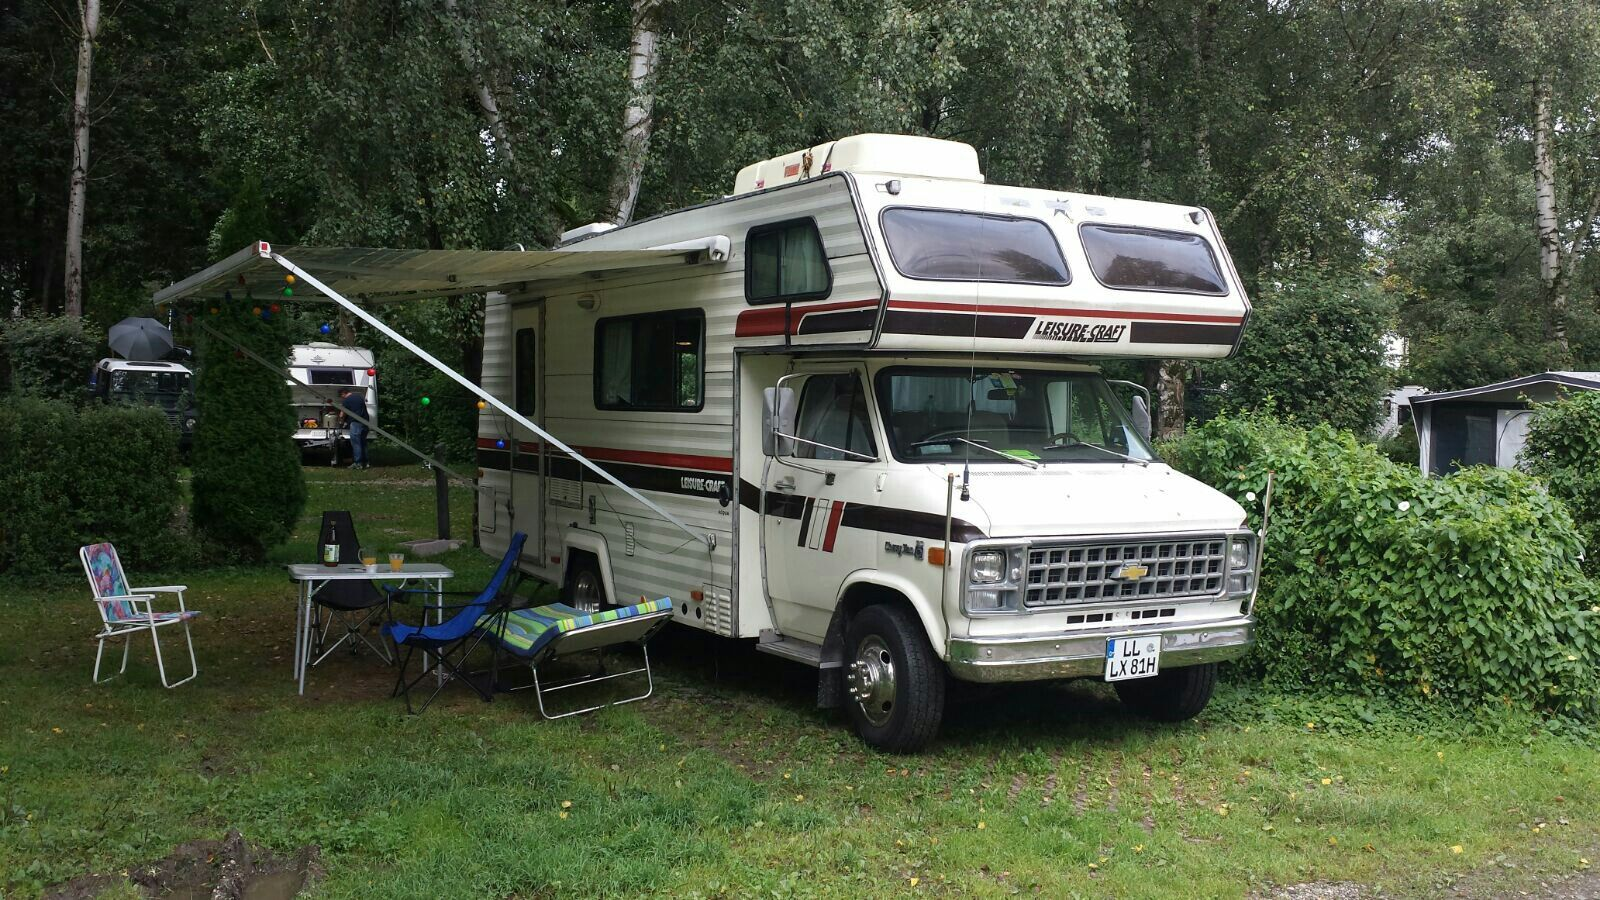 1986 leisure craft class c motorhome i just bought a 1986 leisure craft class c on a ford chassis what can you tell me about where it was made an